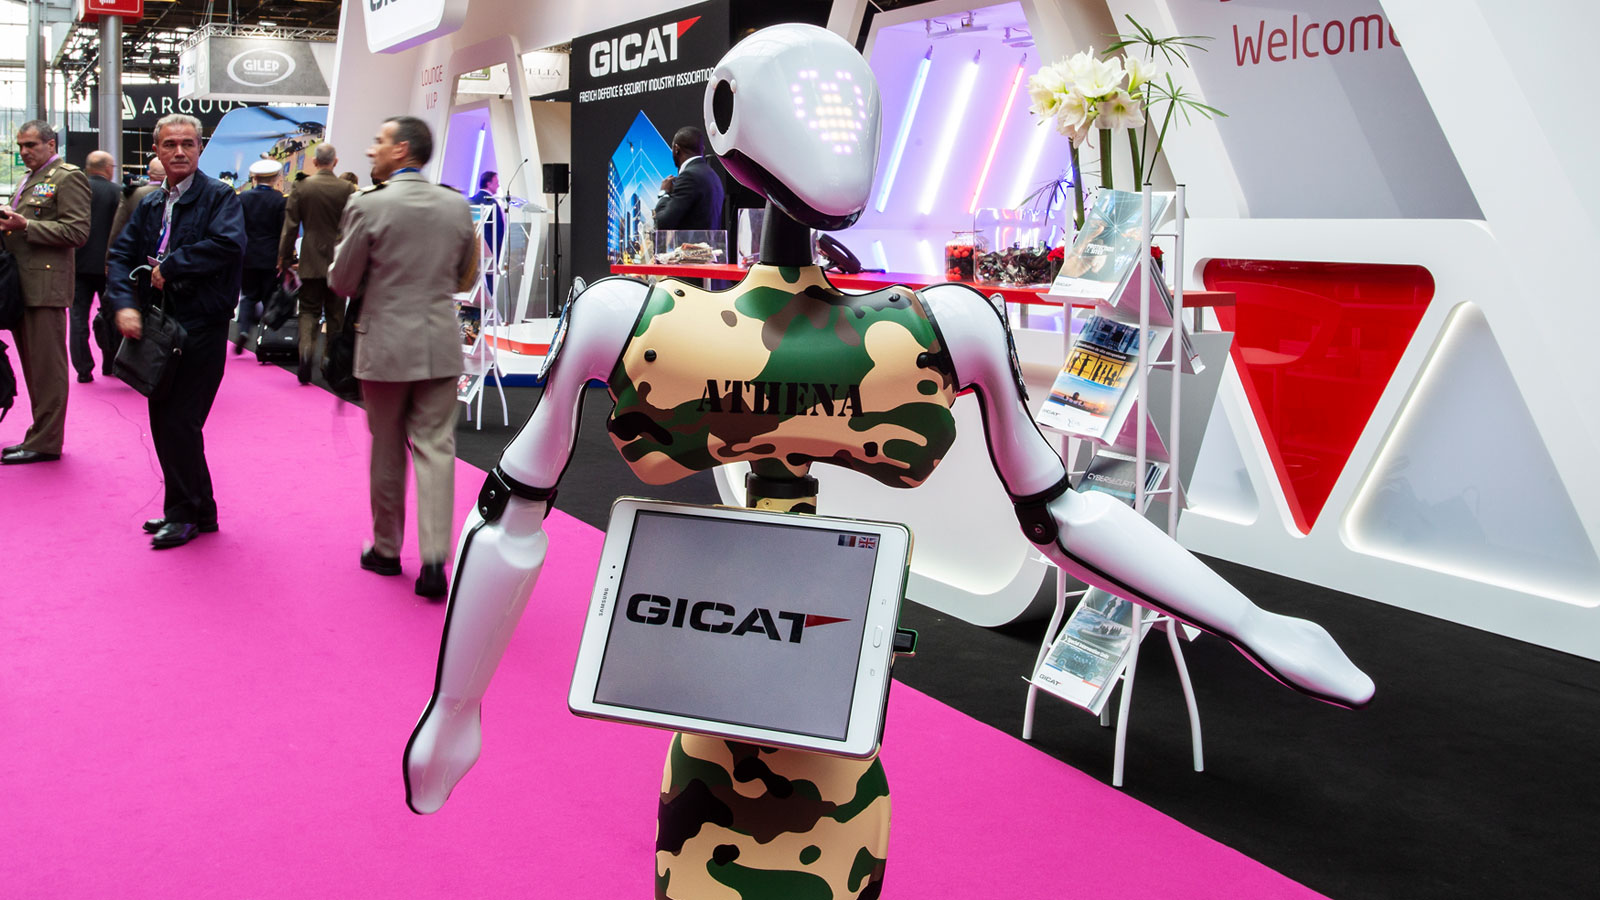 Stand-Gicat-Eurosatory-Marketing-Welcoming-Robot